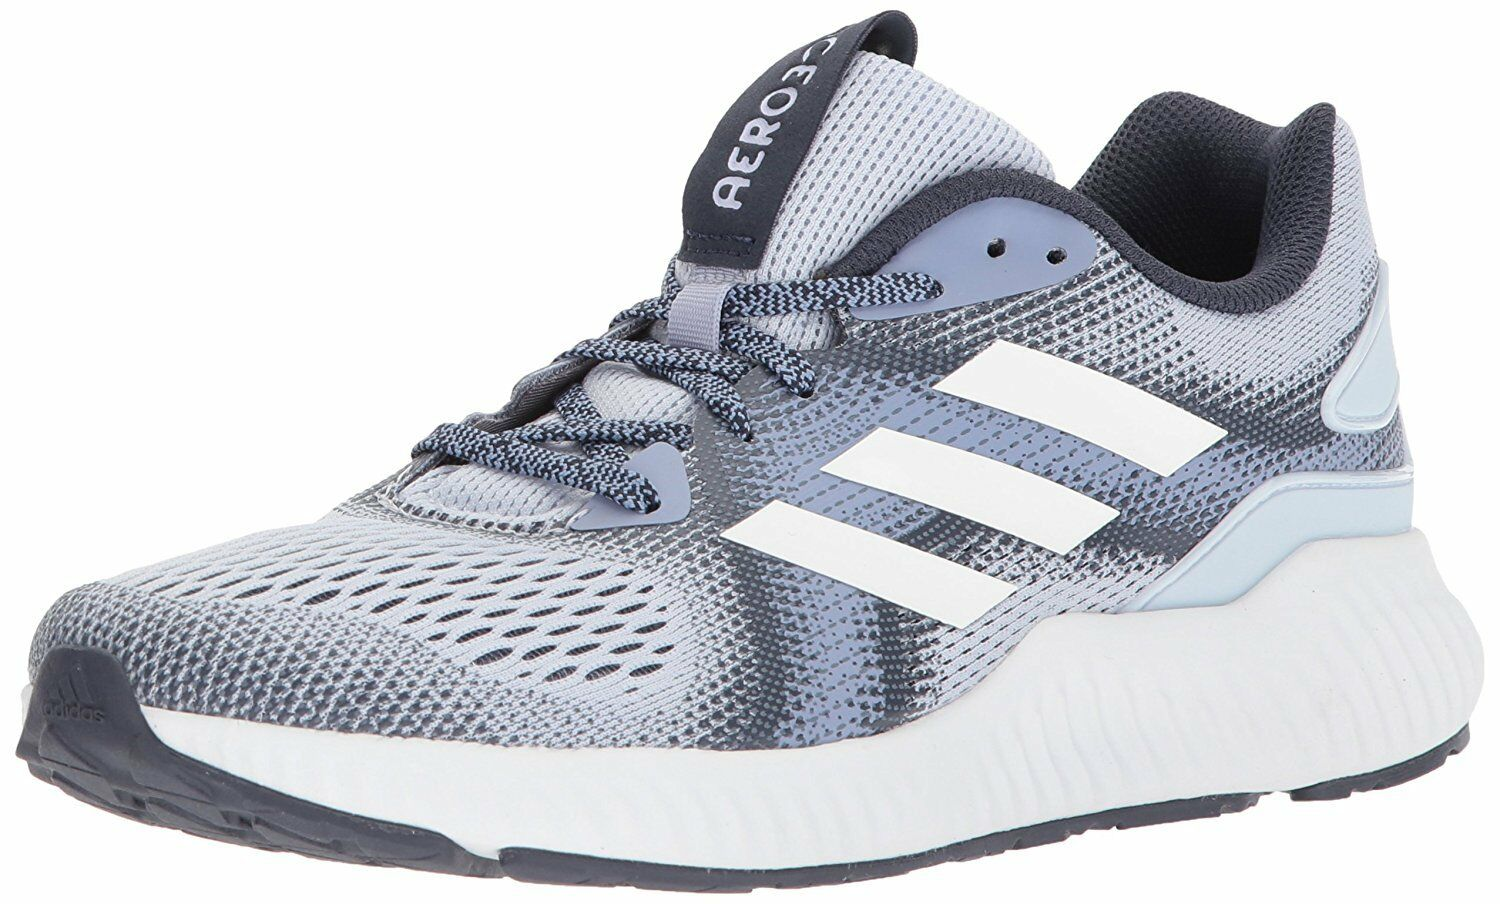 Adidas Donna Aerobounce ST Running Shoes, Colors 2 Colors Shoes, c690b7